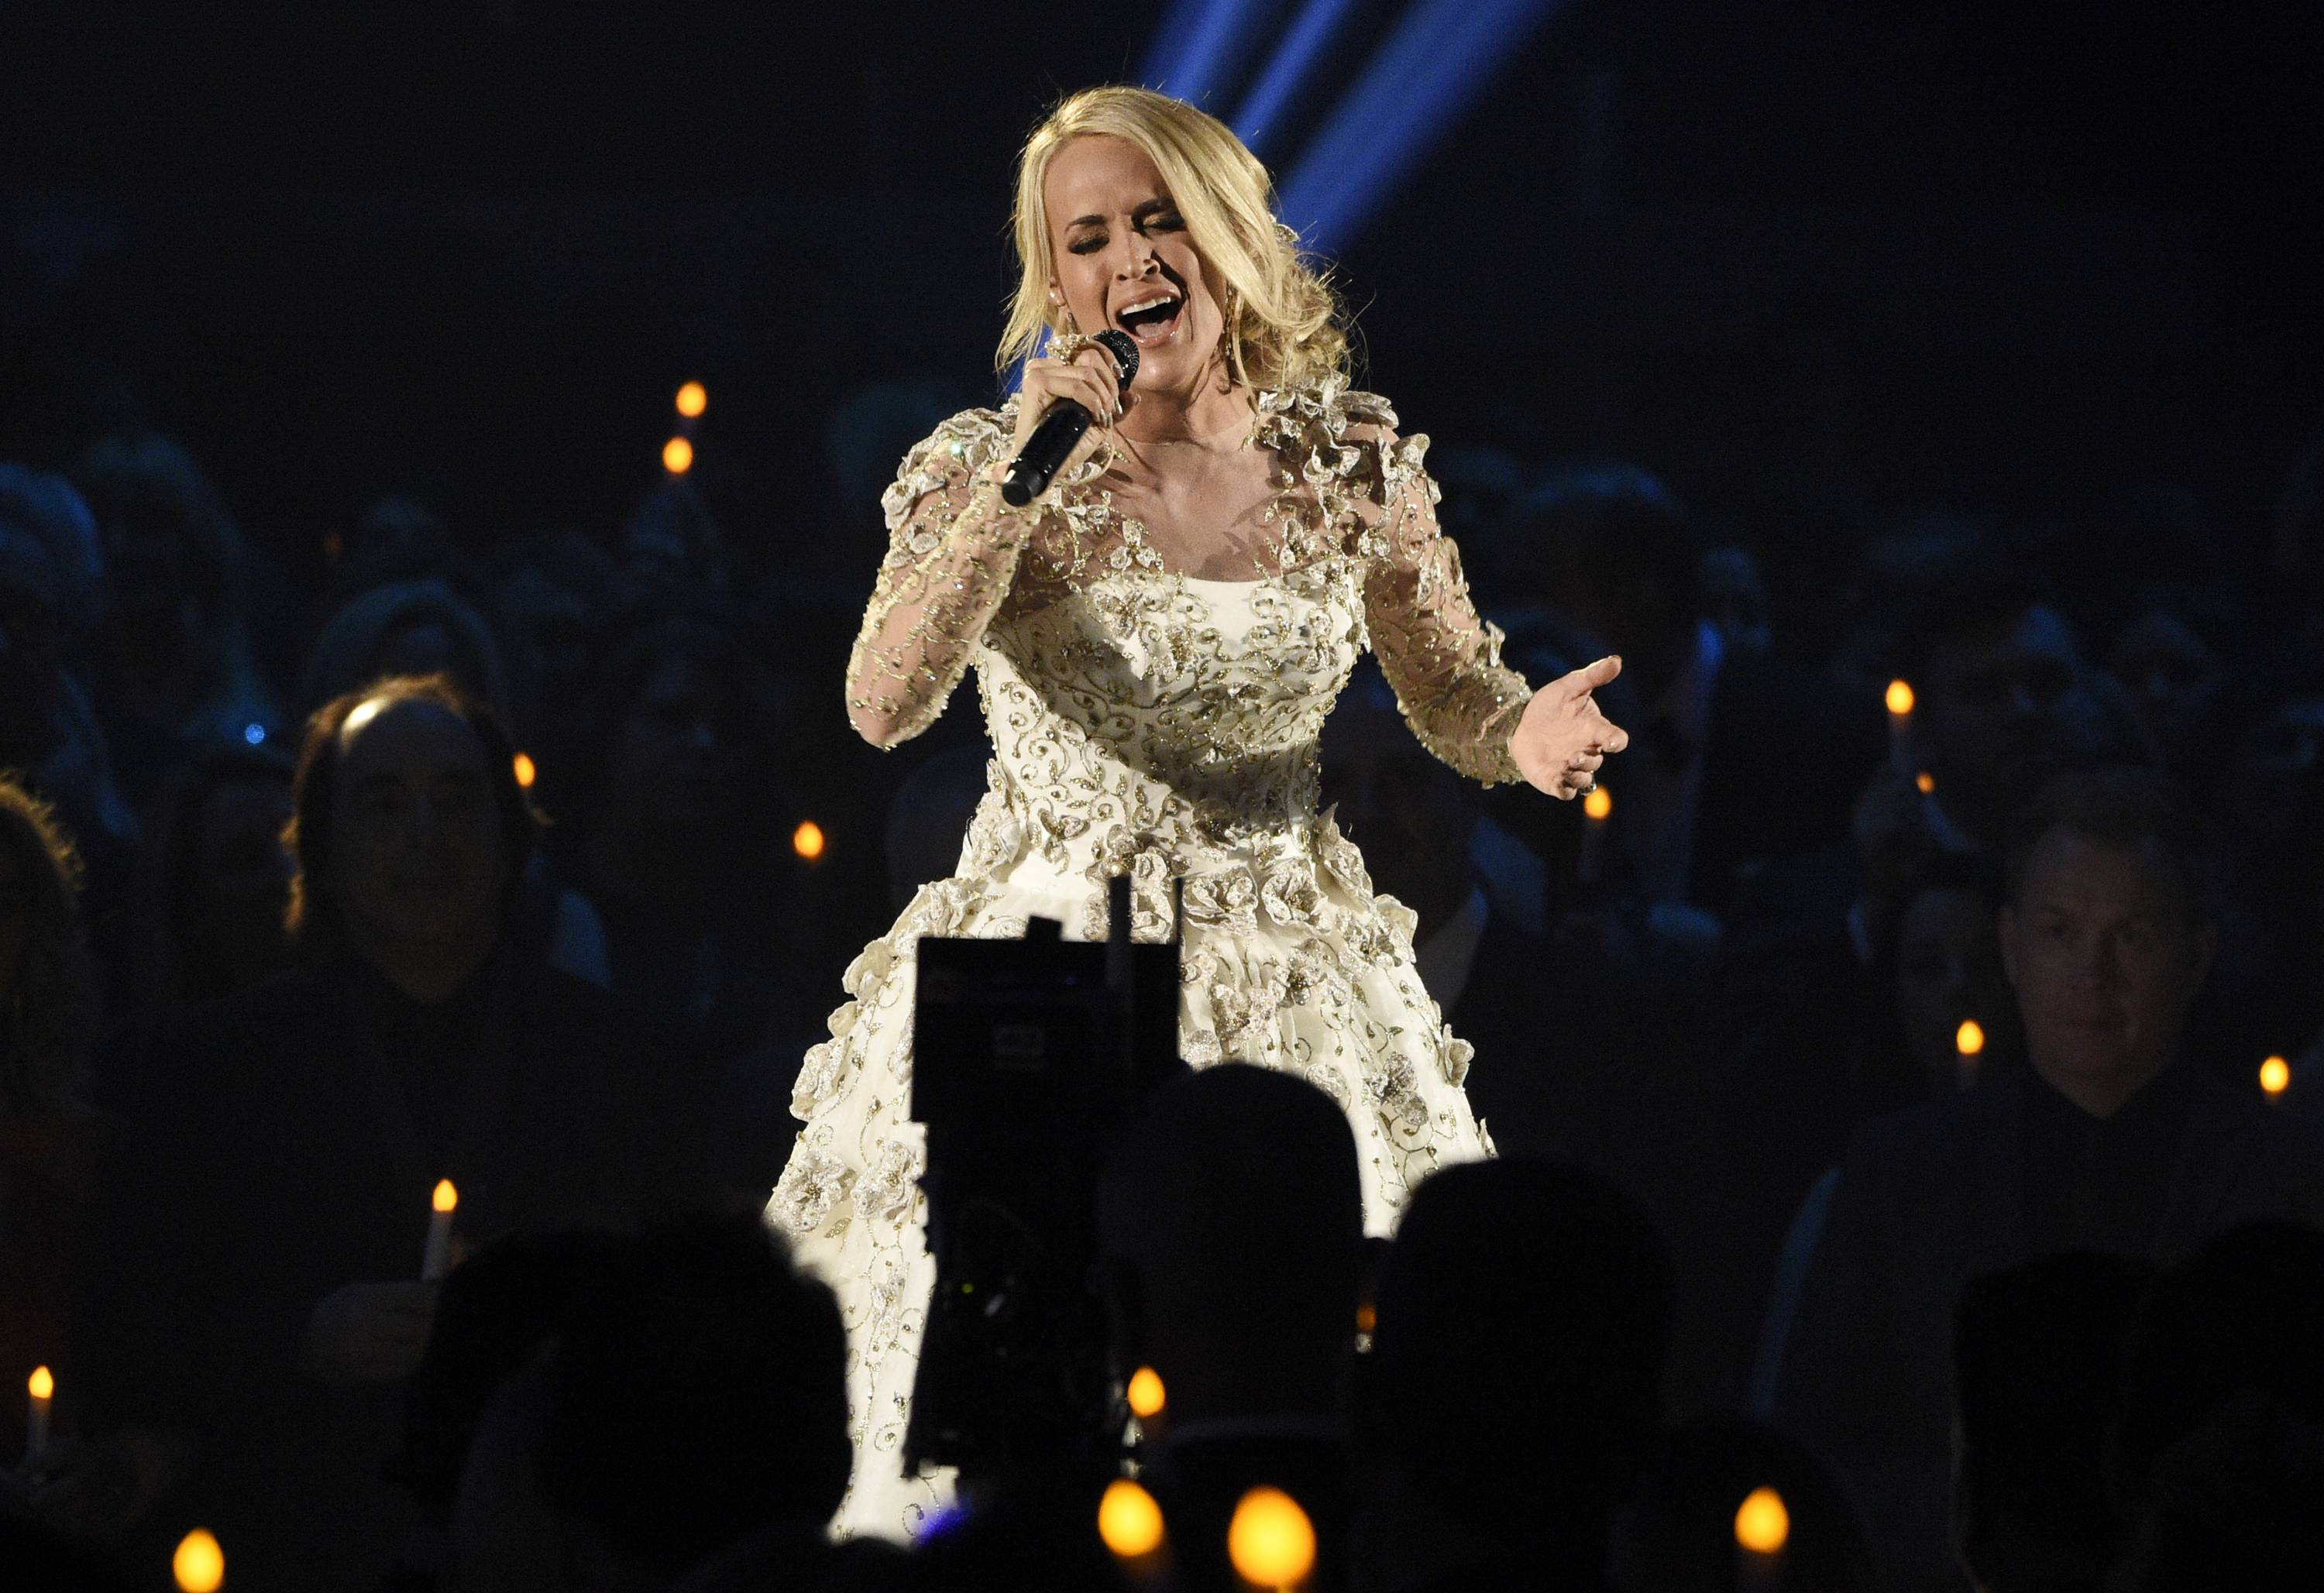 "FILE — In this Nov. 8, 2017, file photo, Carrie Underwood performs ""Softly and Tenderly"" during an In Memoriam tribute at the 51st annual CMA Awards at the Bridgestone Arena in Nashville, Tenn. Country singer Underwood is bringing in 2018 by sharing more details about more injuries that she suffered after a fall that broke her wrist. In a blog post to fans on New Year's Day, Underwood says she sustained a facial injury that required 40-50 stitches and that she's ""not quite looking the same."" (Photo by Chris Pizzello/Invision/AP, File)"